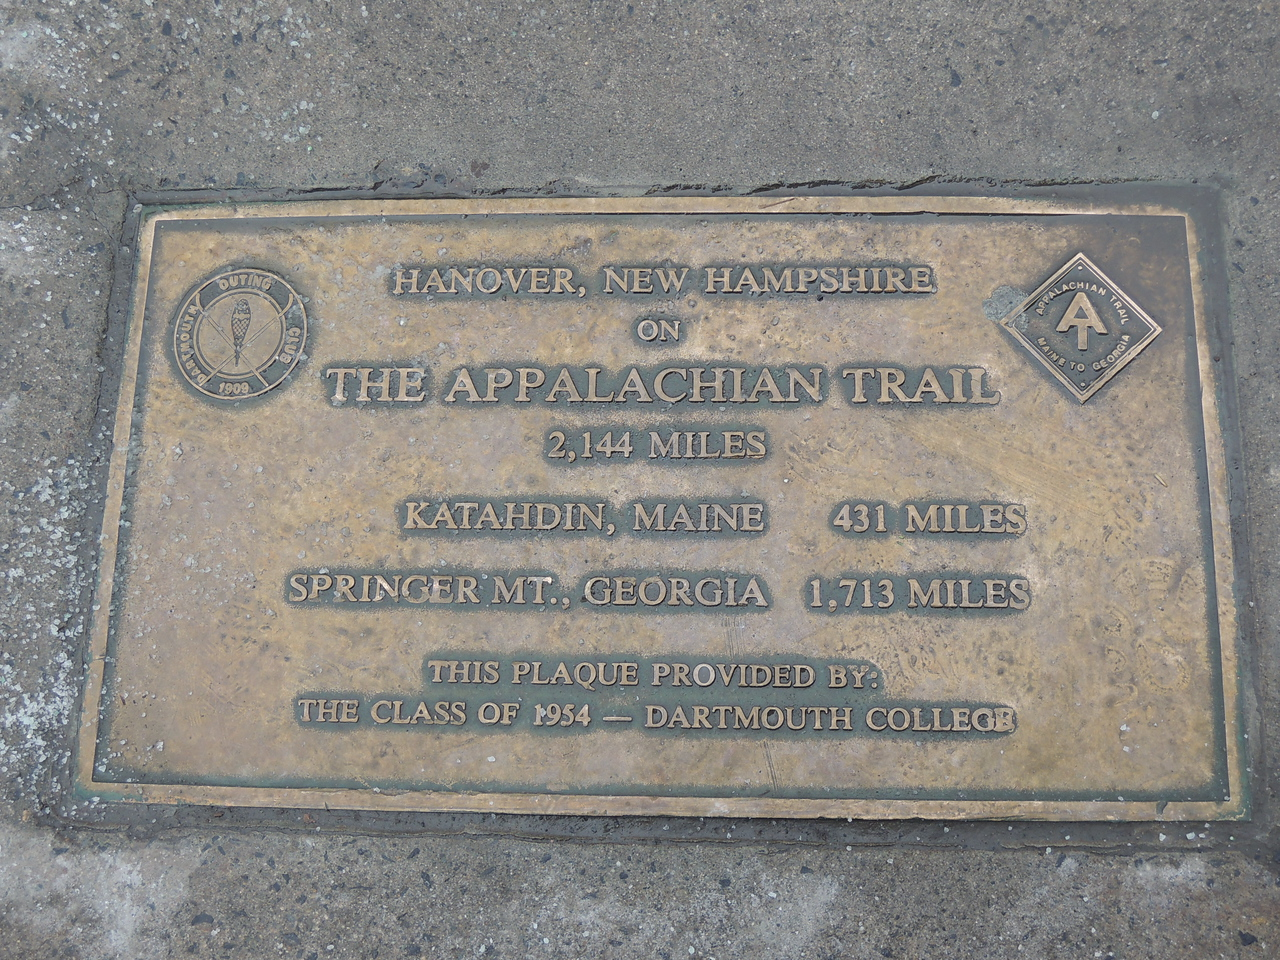 I didn't realize Hanover is on the Appalachian trail.  This is set into the sidewalk downtown.